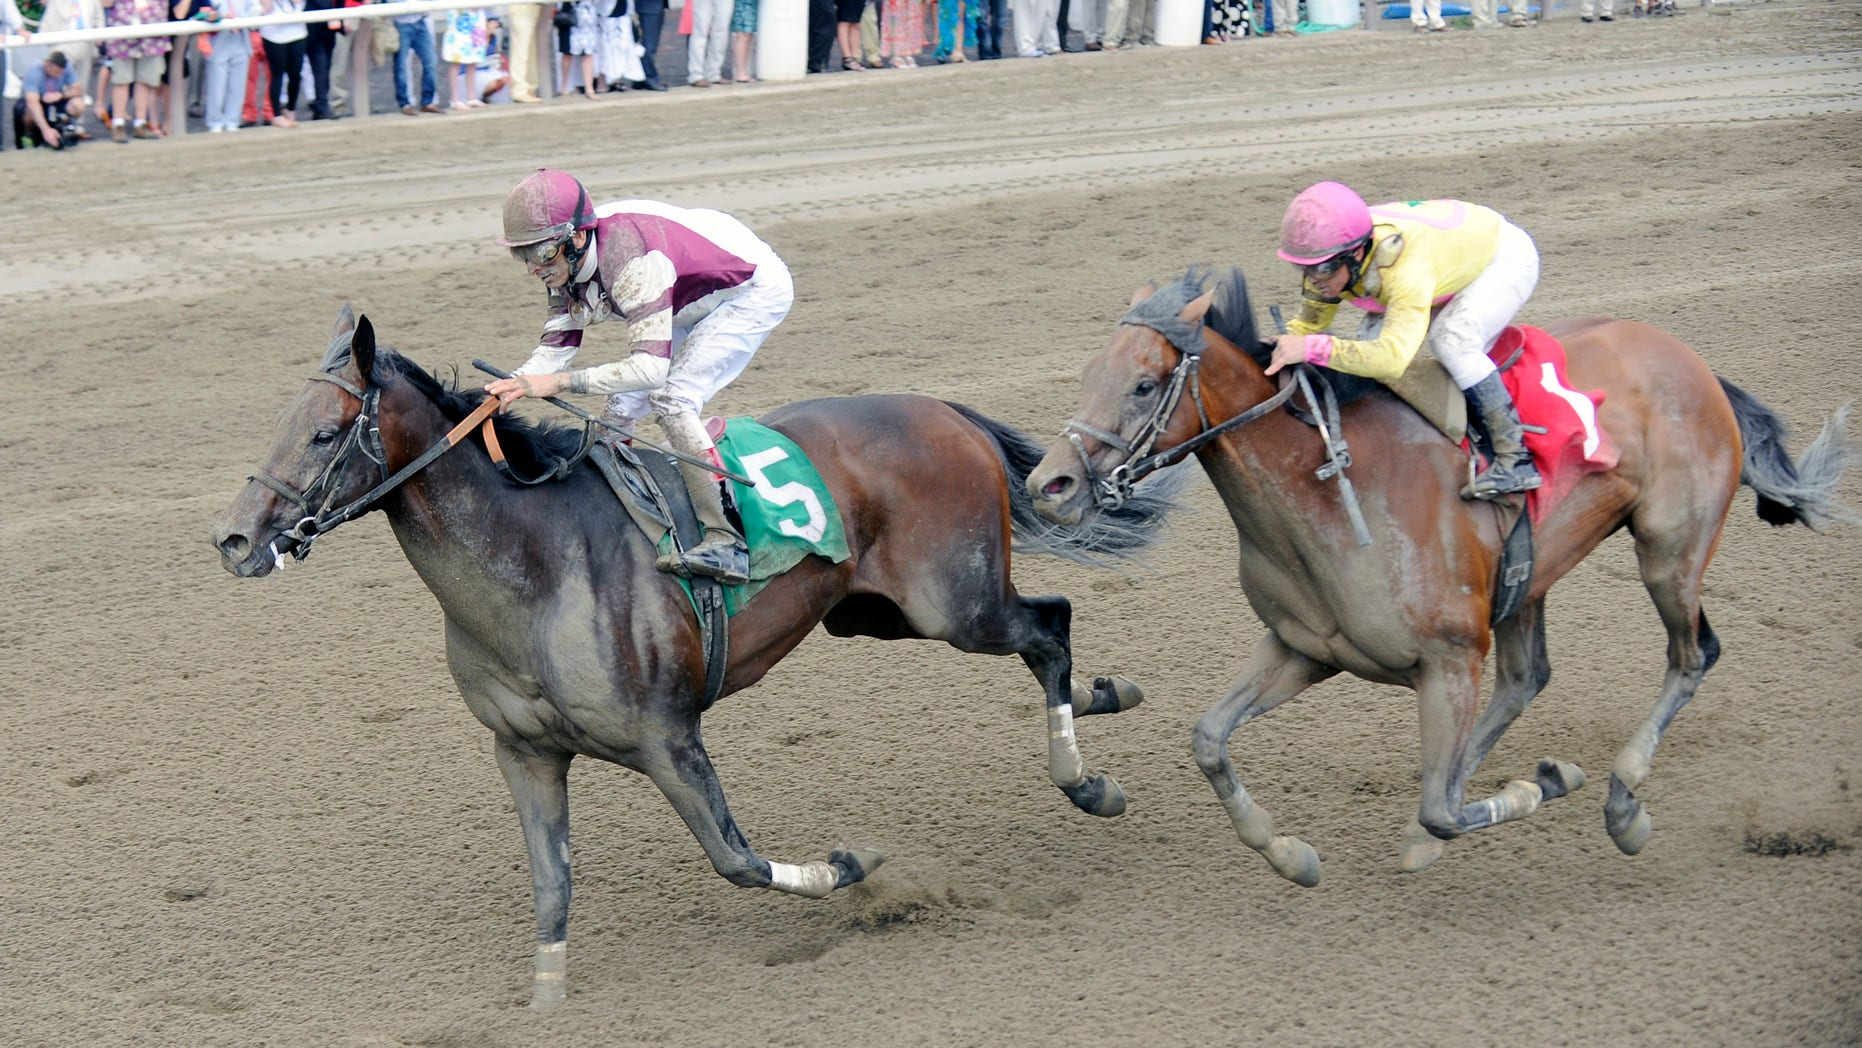 Sea Raven,  ridden by jockey John Velazquez, left, moves past Royal Posse with jockey Javier Castellano up, to win the first race on opening day of the horse racing season at Saratoga Race Course in Saratoga Springs, N.Y., Friday, July 24, 2015. (AP Photo/Hans Pennink)